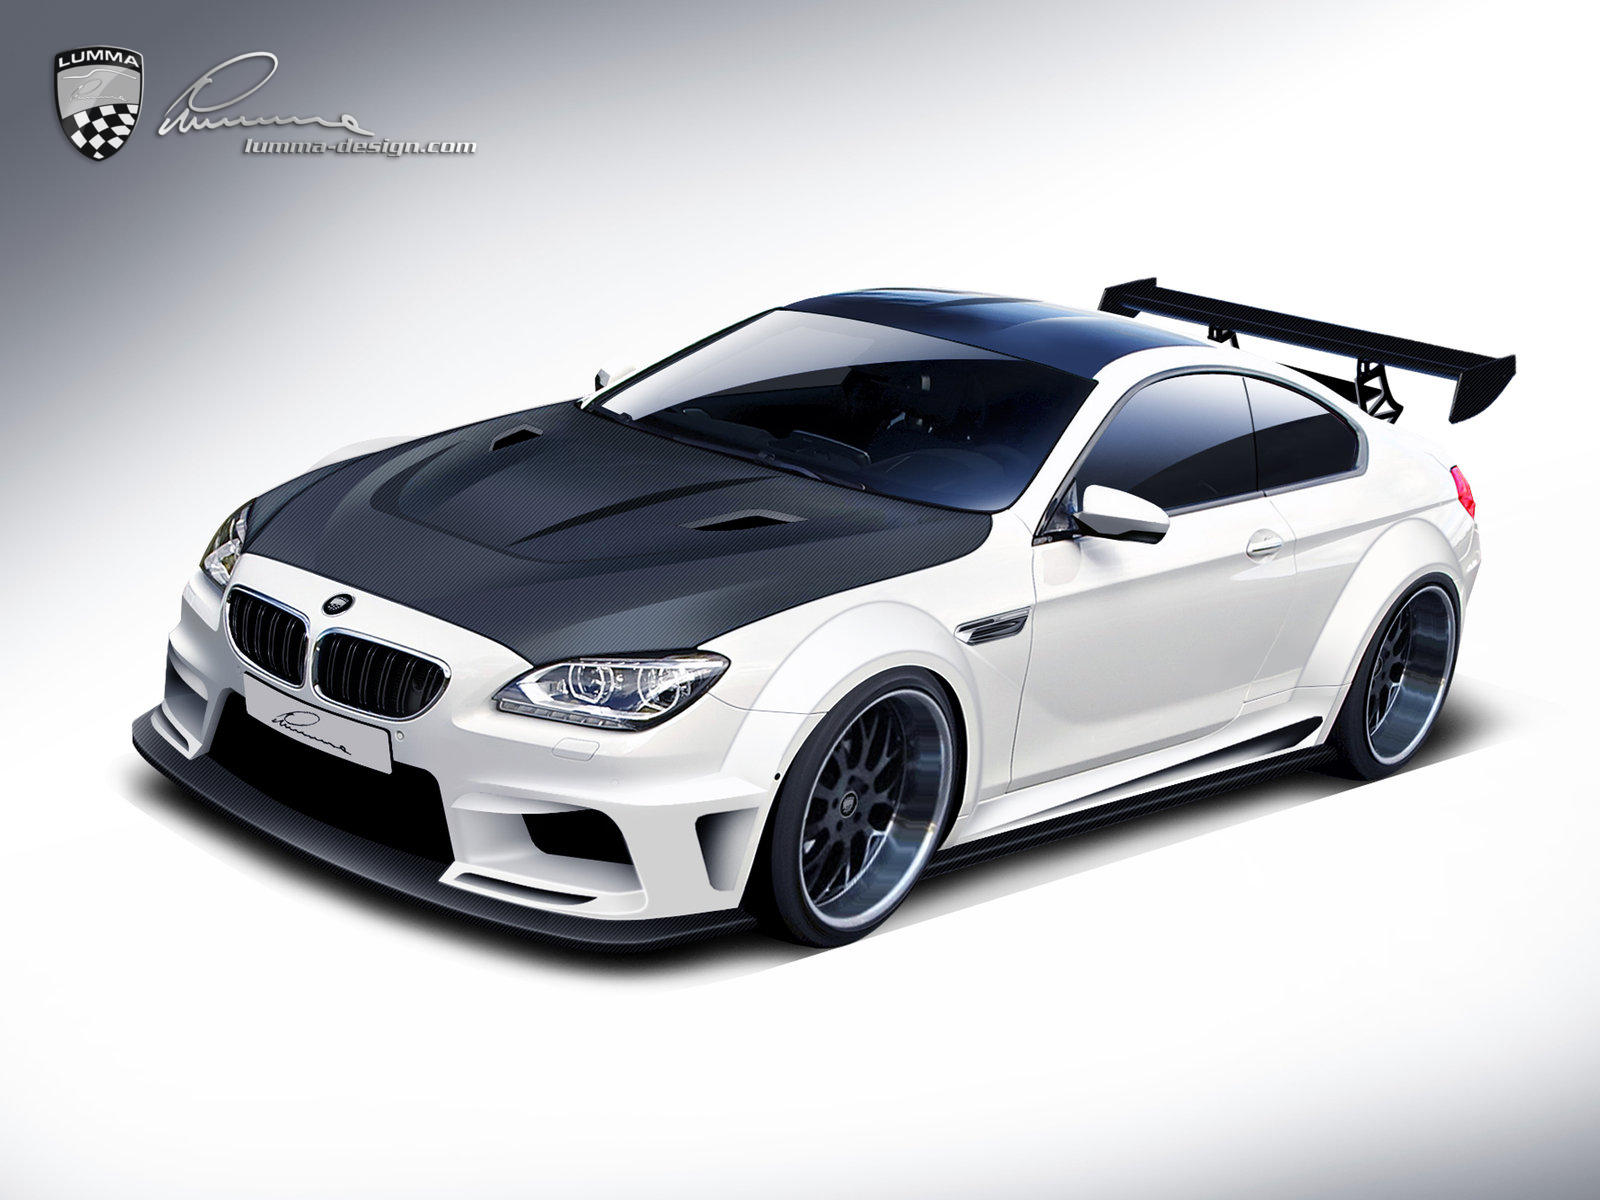 BMW M6 CLR by Lumma Design